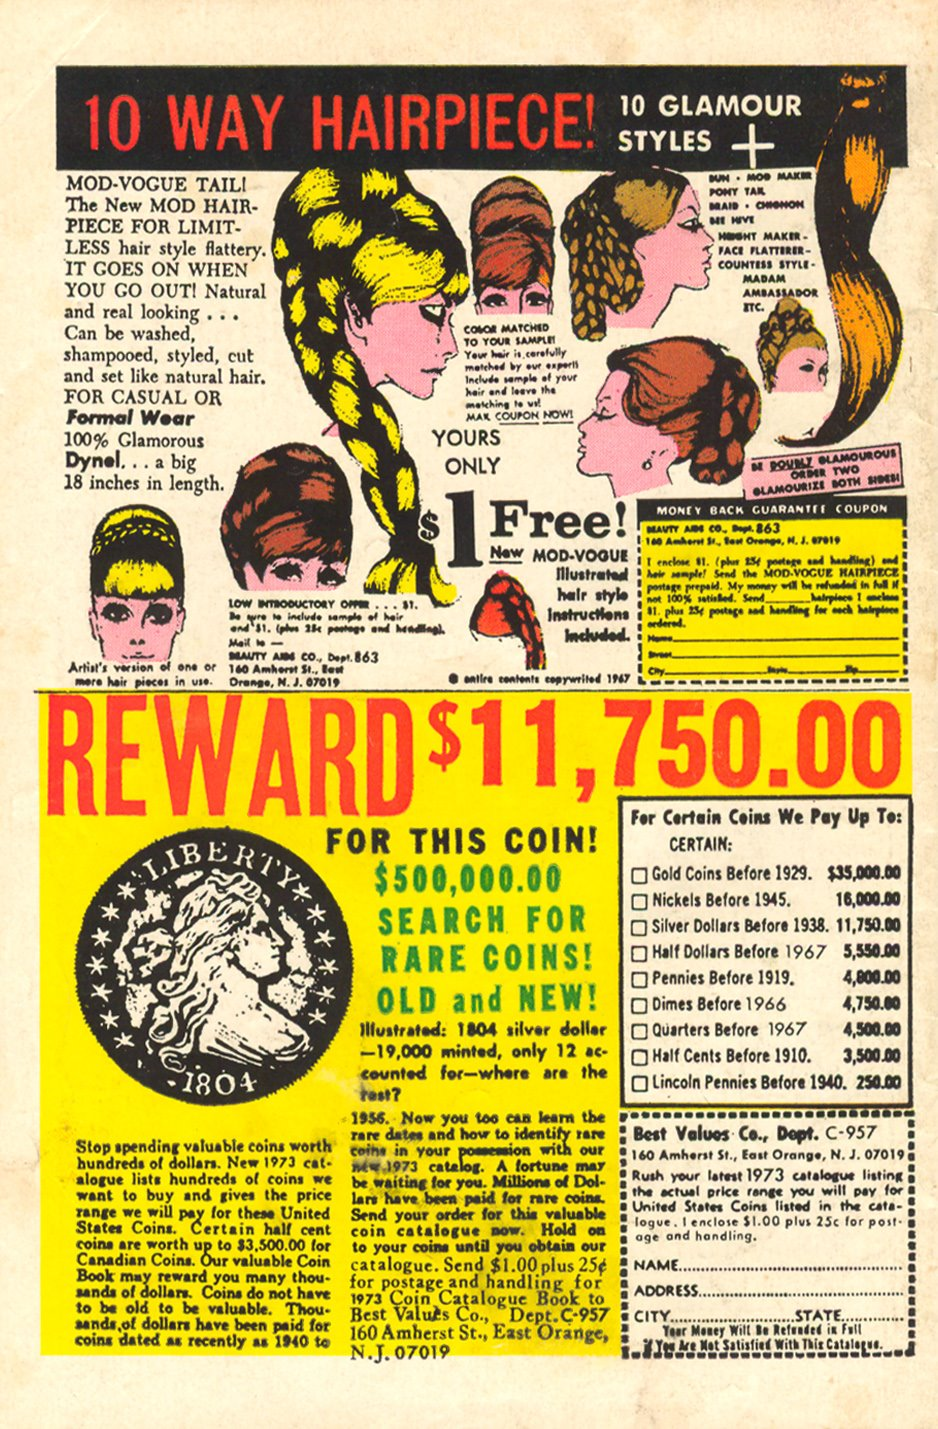 10 way Hairpiece advertisement 1960s